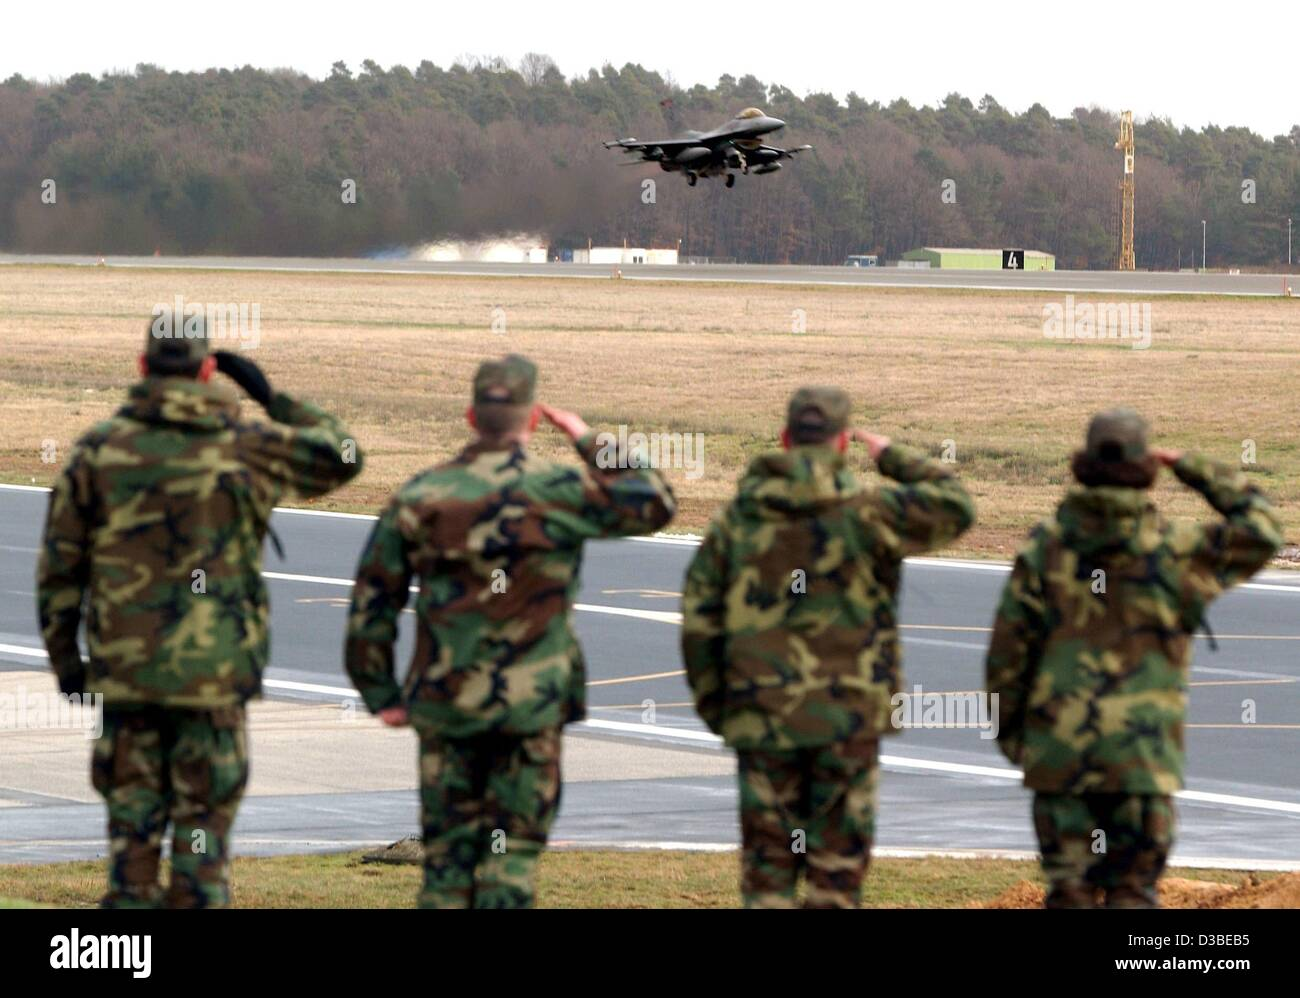 (dpa) - Members of the US Air Force salute a pilot of the 52nd fighter group who takes off with a war plane of type - Stock Image